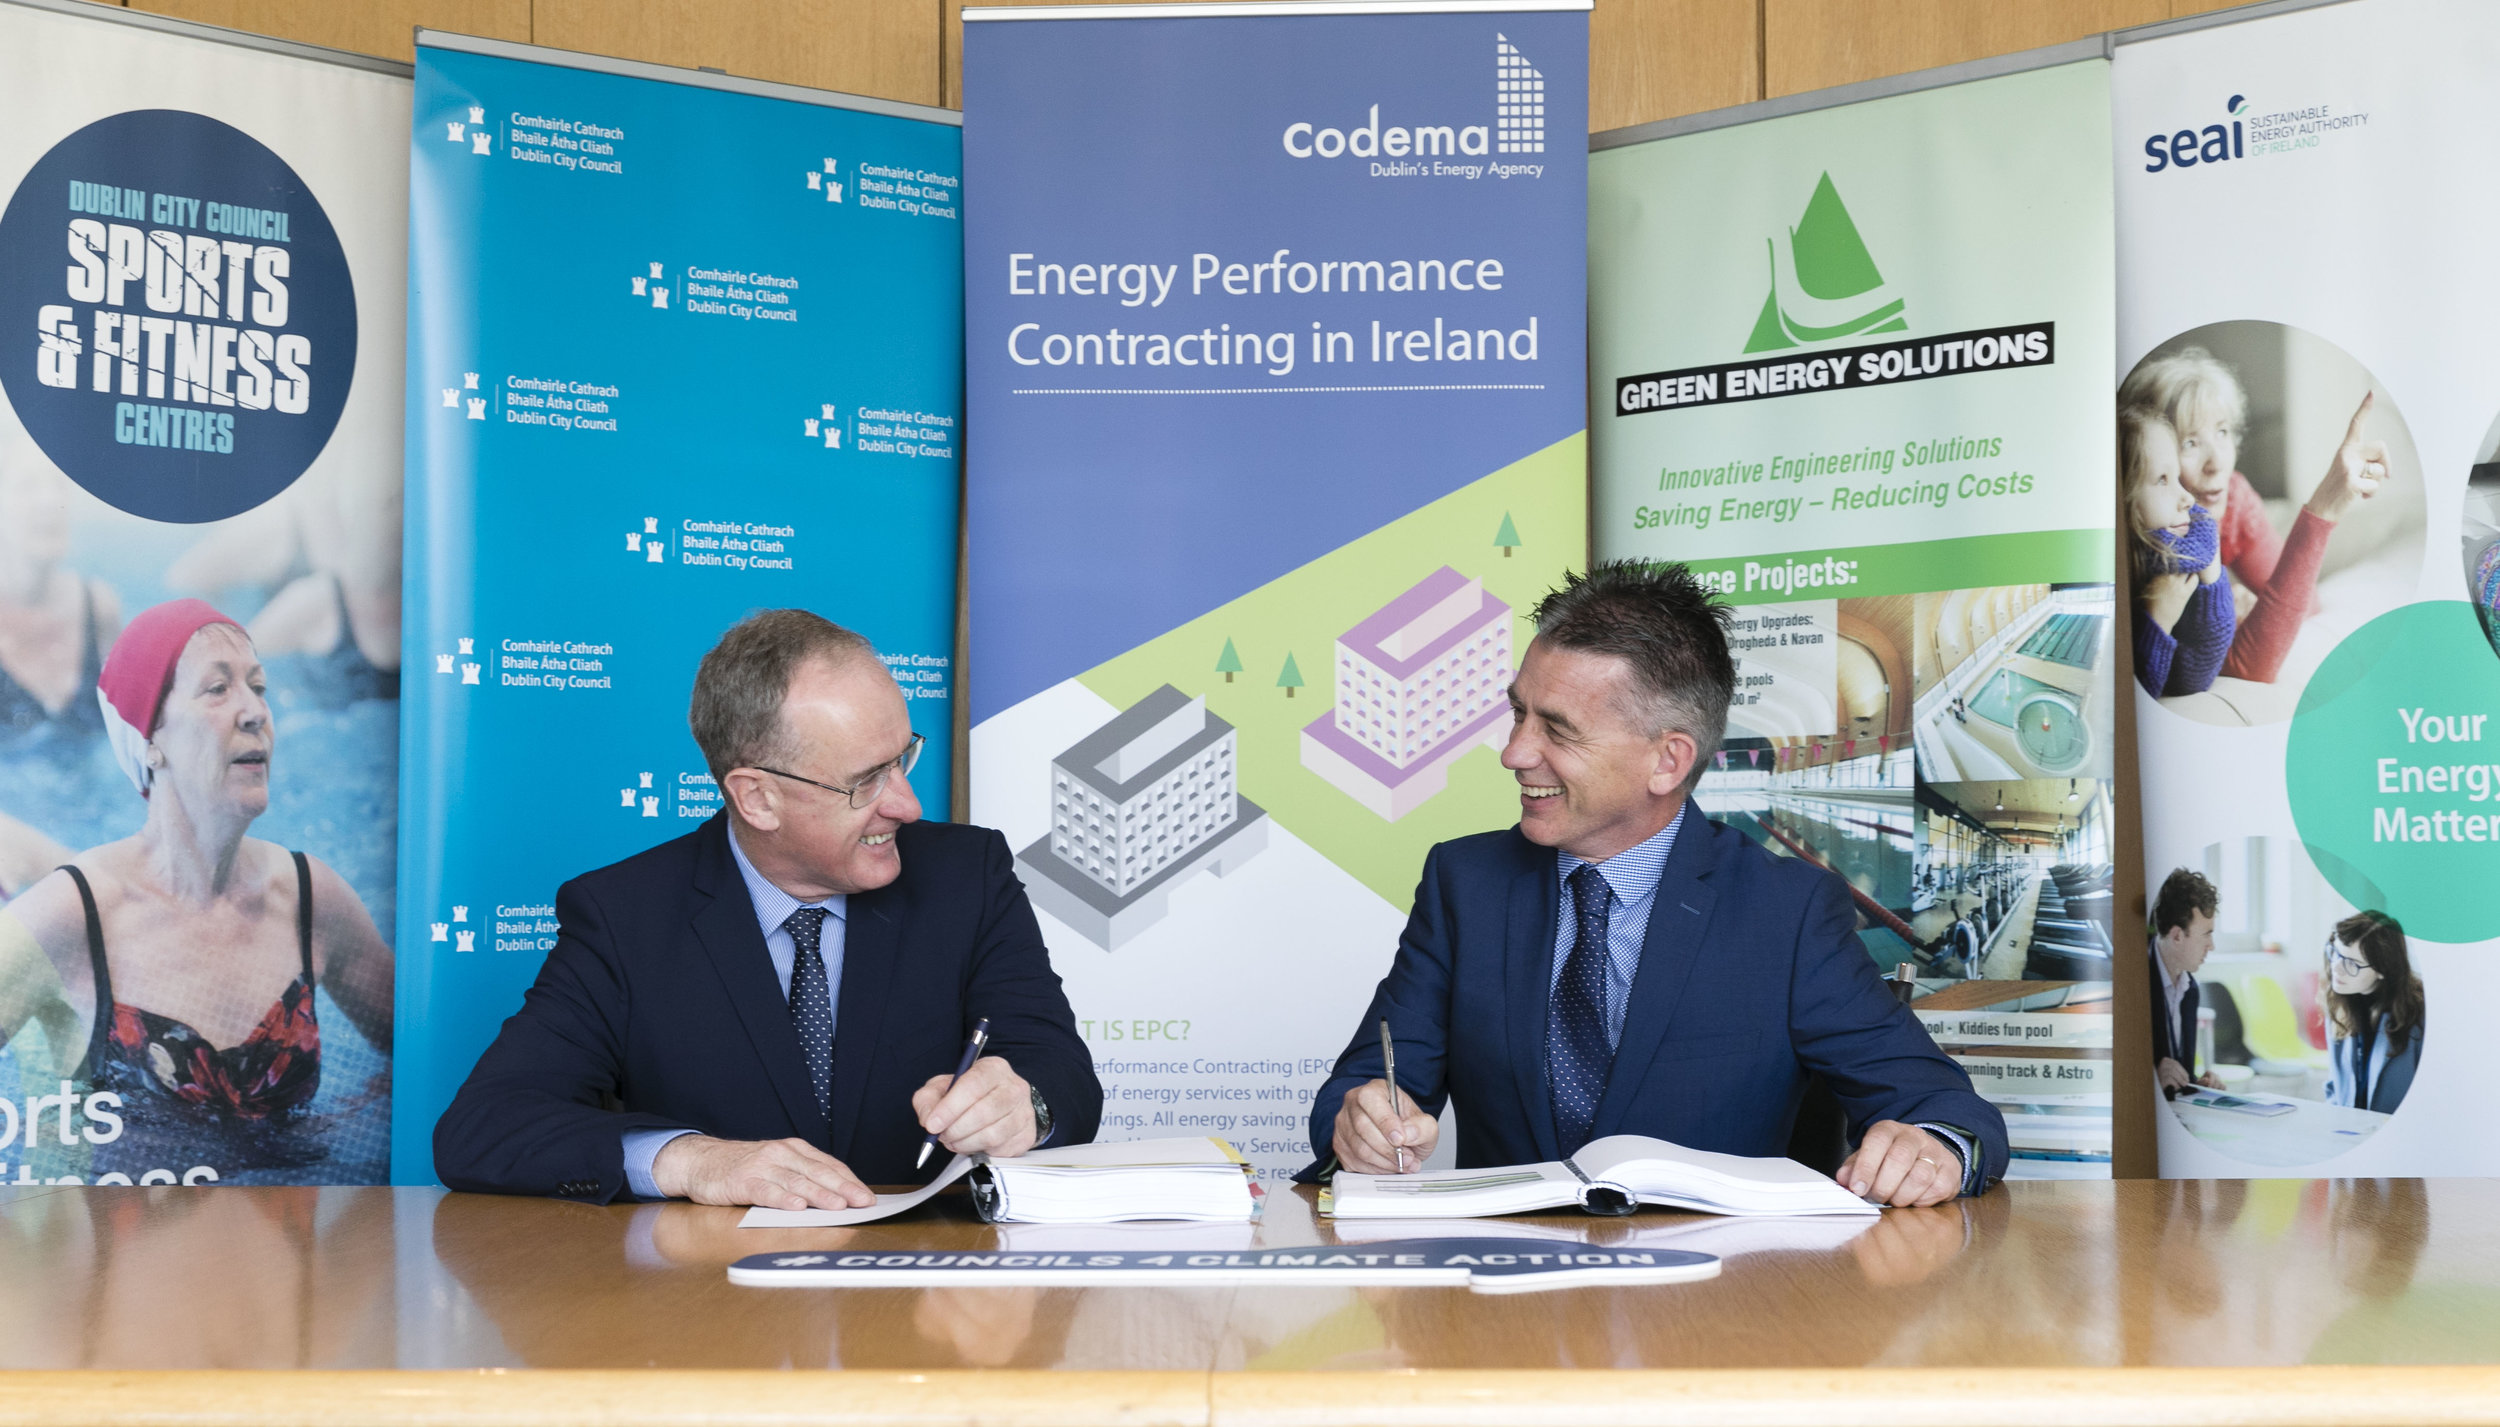 Owen Keegan Chief Executive Dublin City Council and Daniel Ring Managing Director Noel Lawler Green Energy Solutions signing the Energy Performance Contract. Photo credit: Fennell Photography